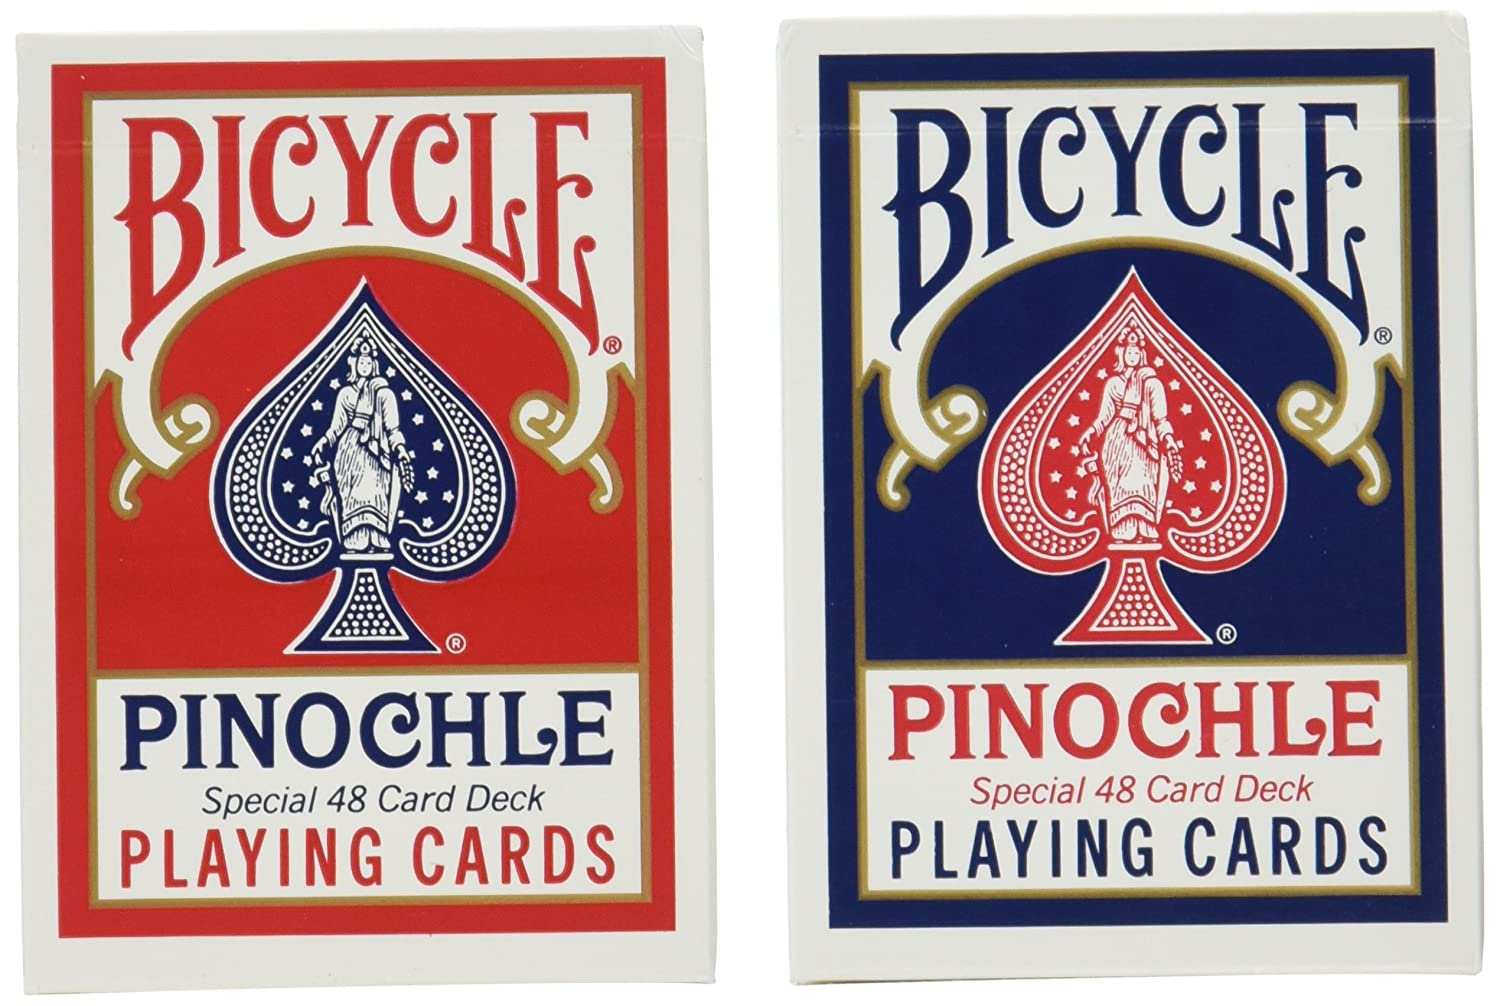 12 Decks Bicycle Pinochle Cards (6 Red / 6 Blue) Brybelly GUSP-010*12